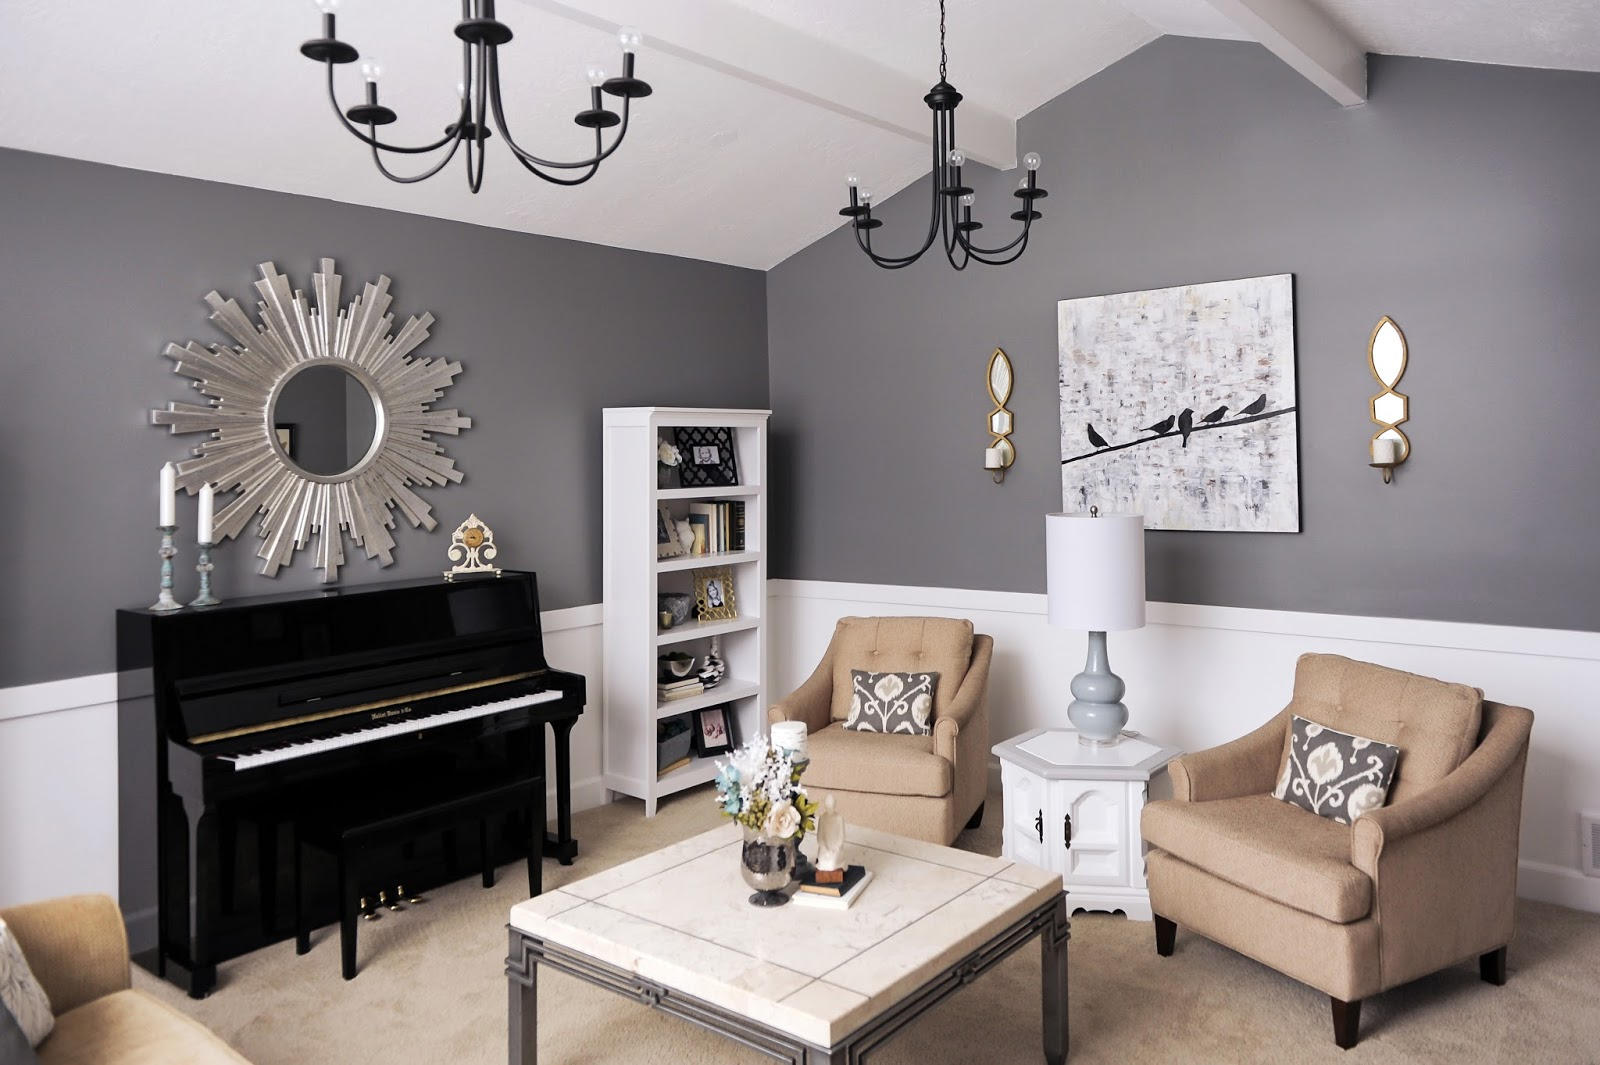 Silver Living Room Design Diy : ... design, living room, family room, chic, interiors, salt lake city